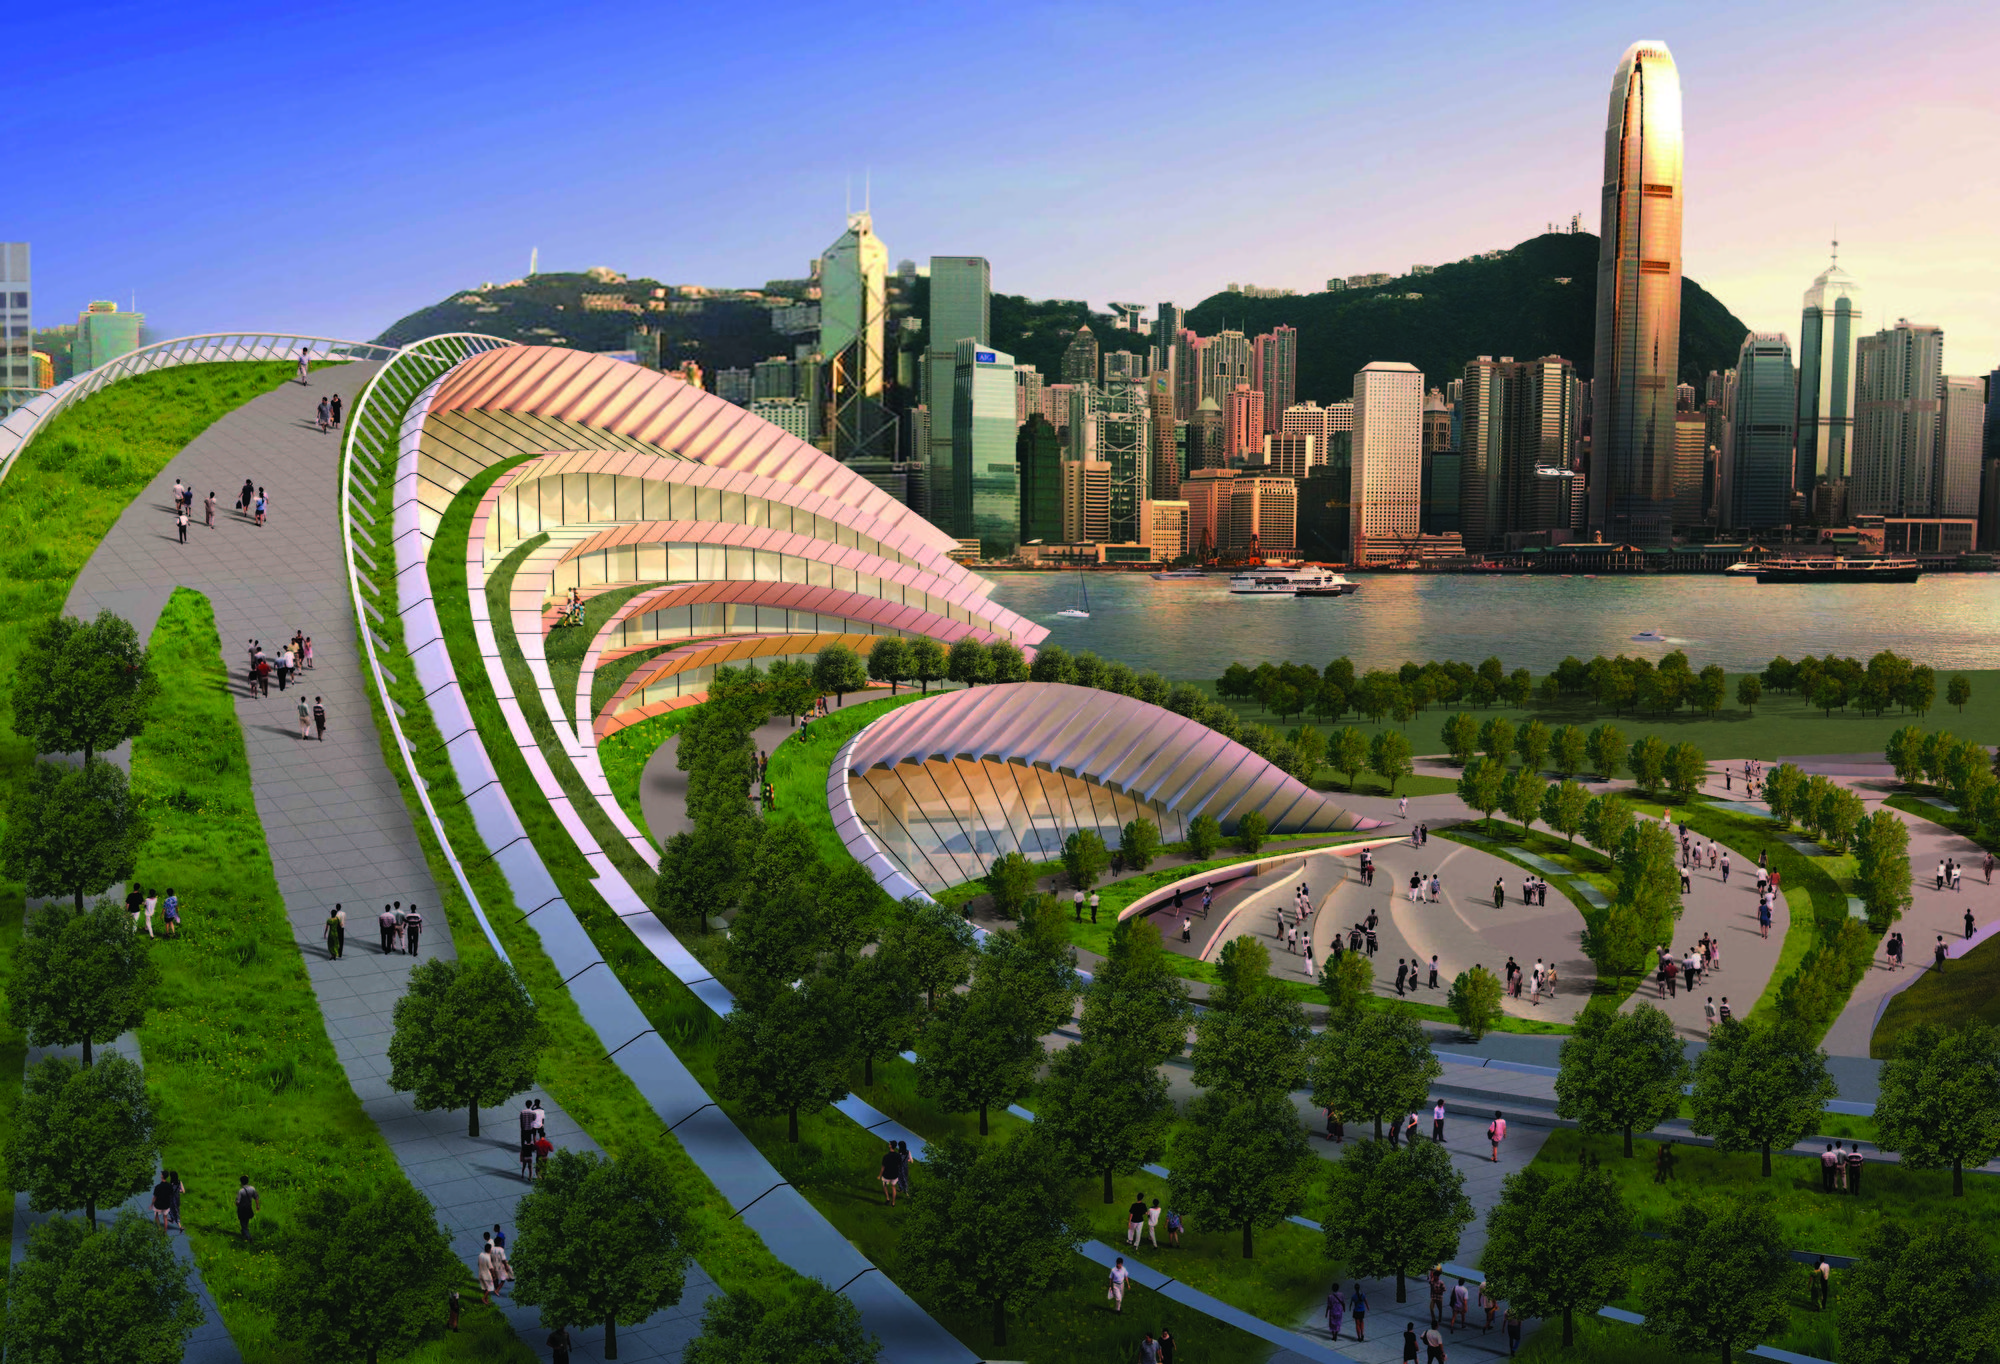 Gallery Of Express Rail Link West Kowloon Terminus